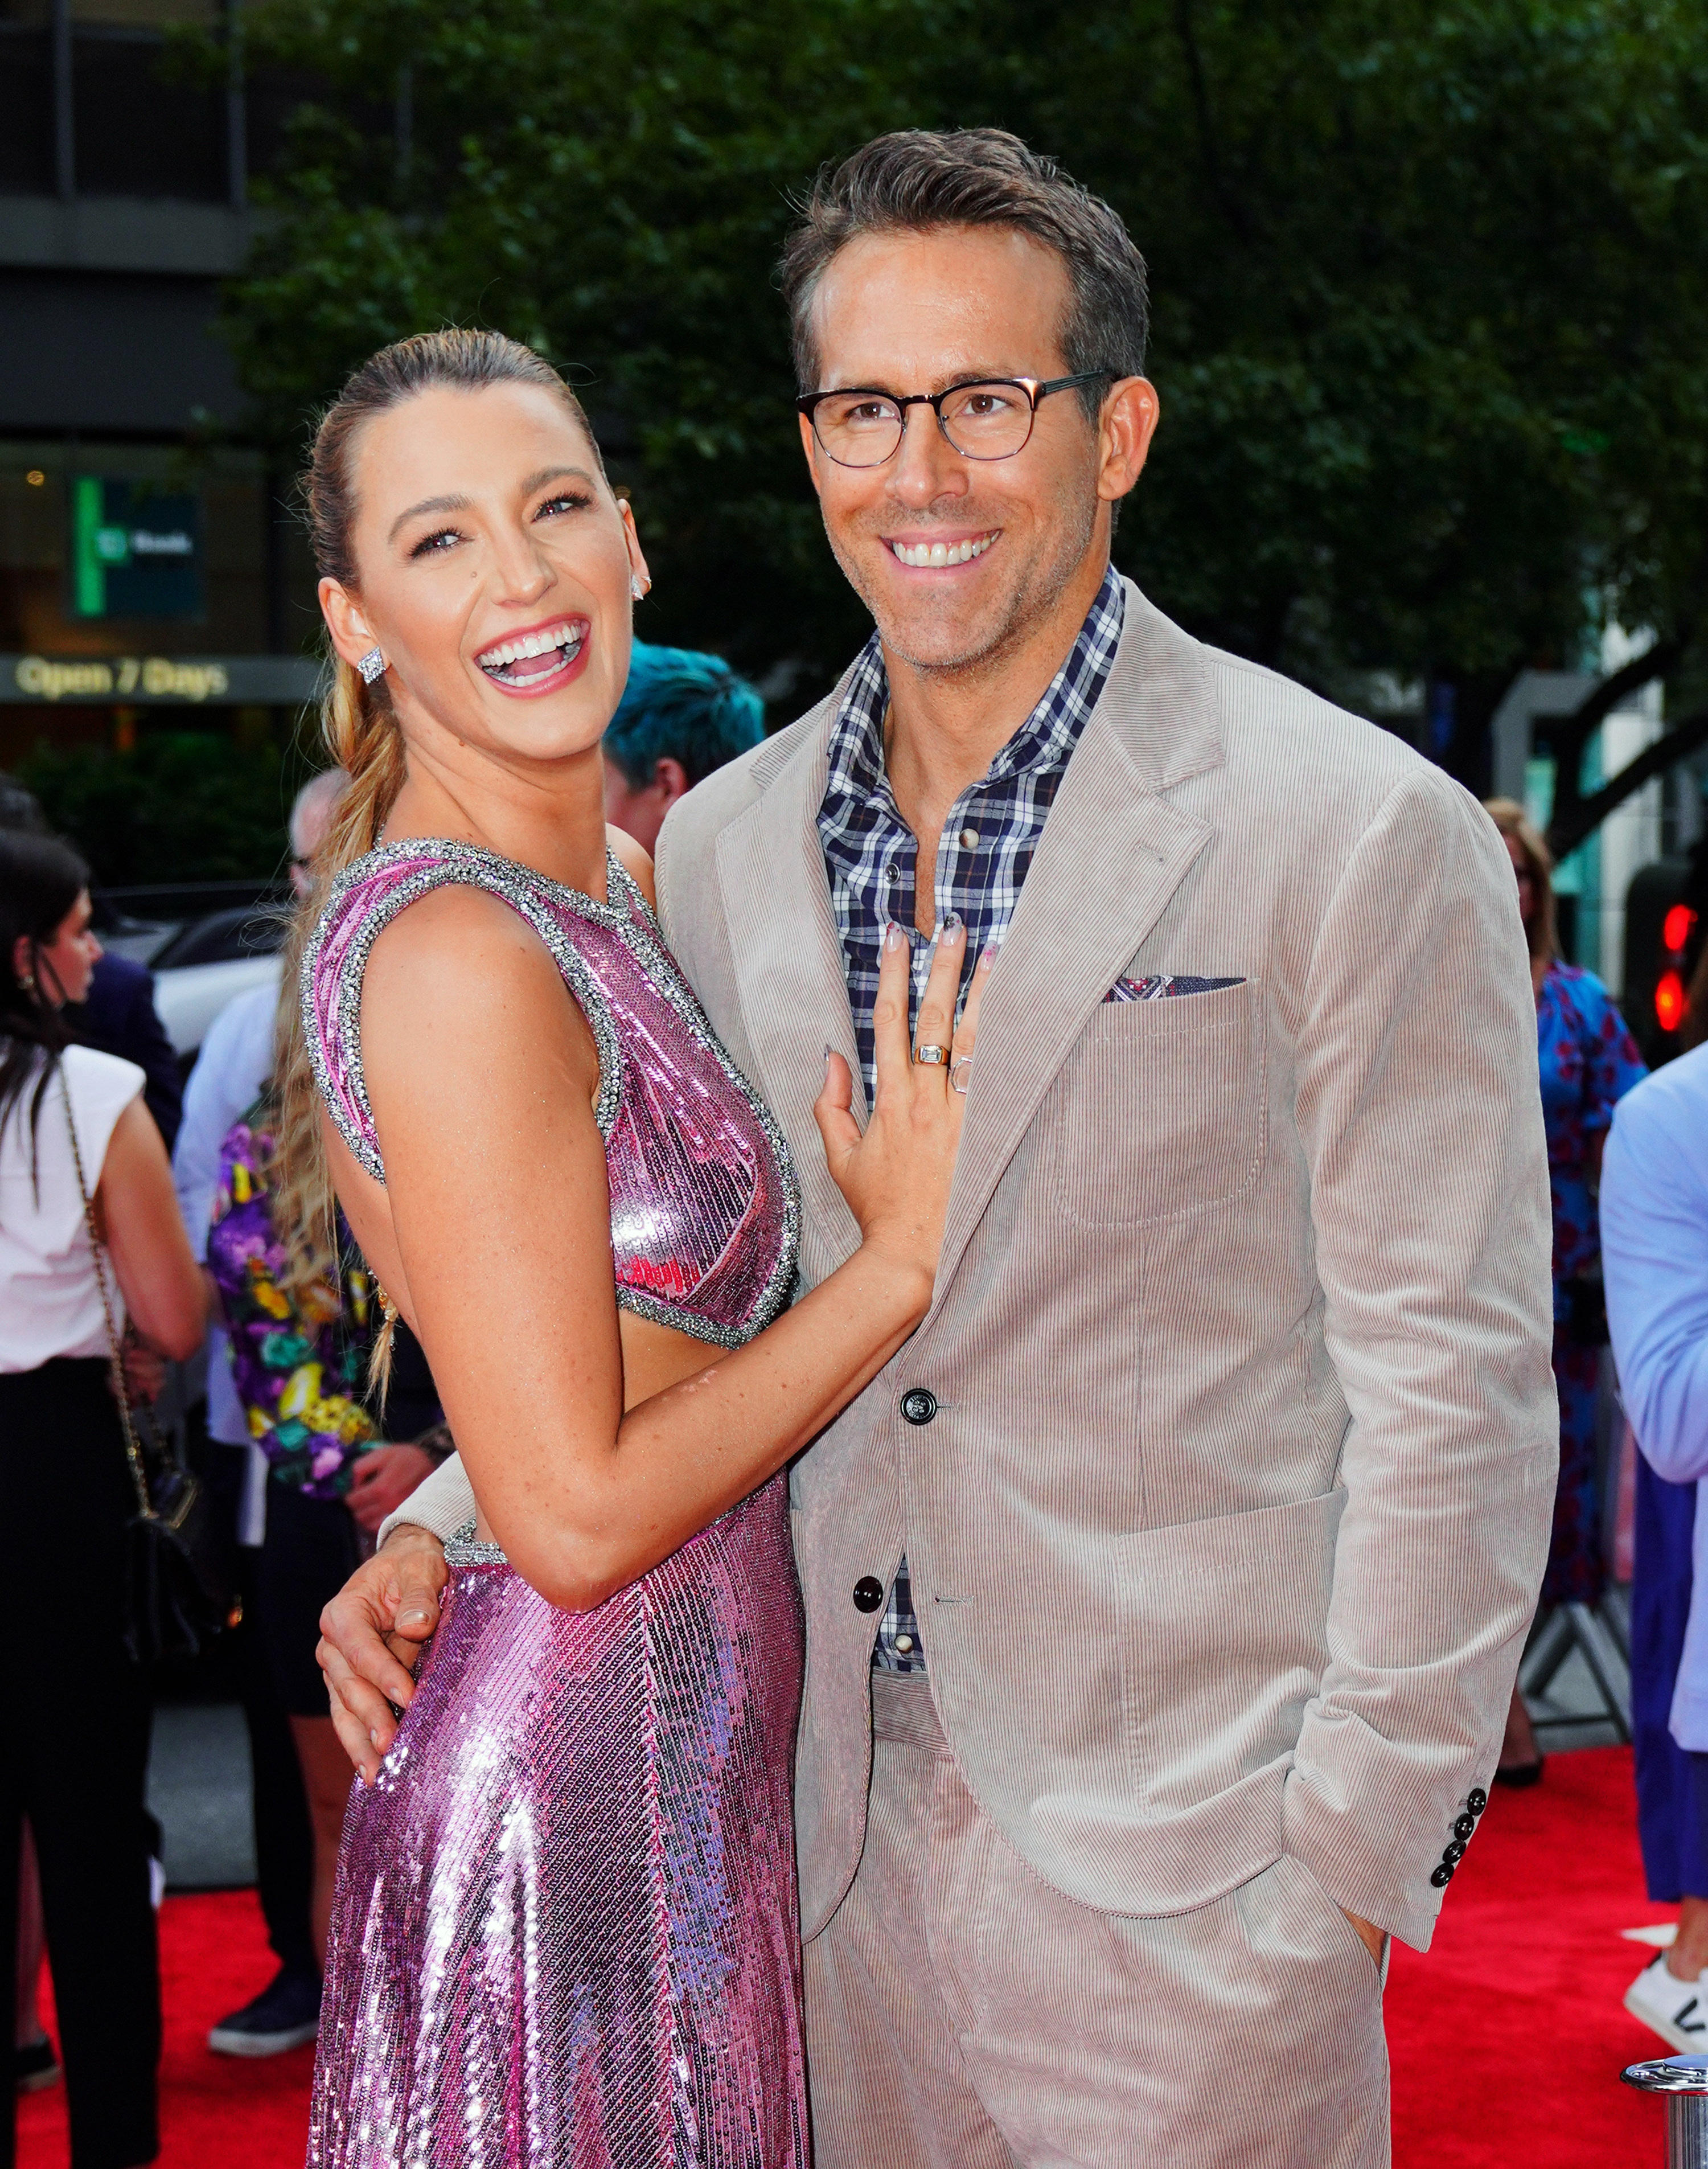 Blake Lively and Ryan Reynolds are photographed on the red carpet